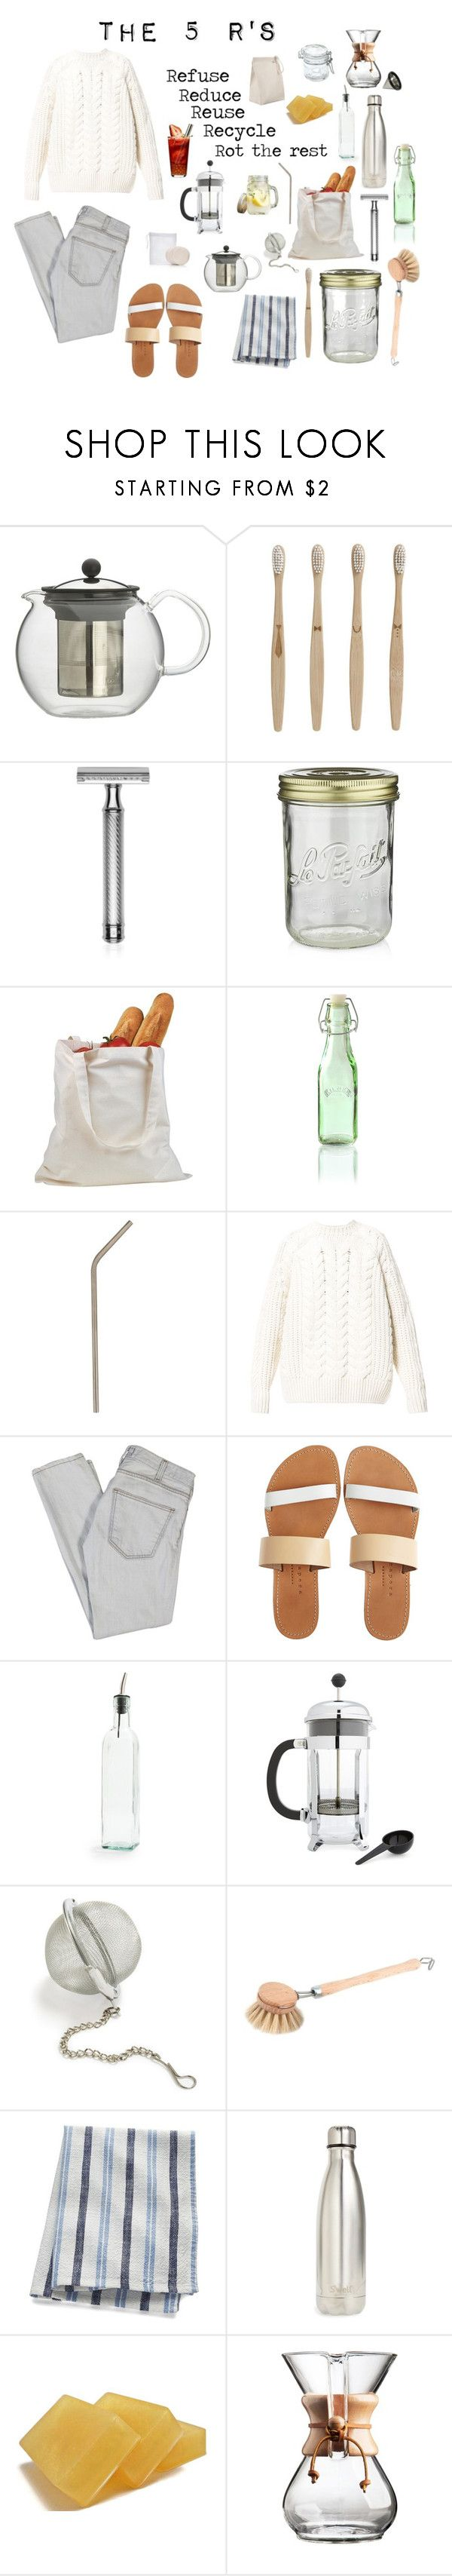 """""""Zero Waste Aesthetic"""" by solarpunkartist on Polyvore featuring Bodum, ferm LIVING, Baxter of California, Crate and Barrel, Kilner, Diesel, Current/Elliott, Isapera, Sur La Table and Redecker"""